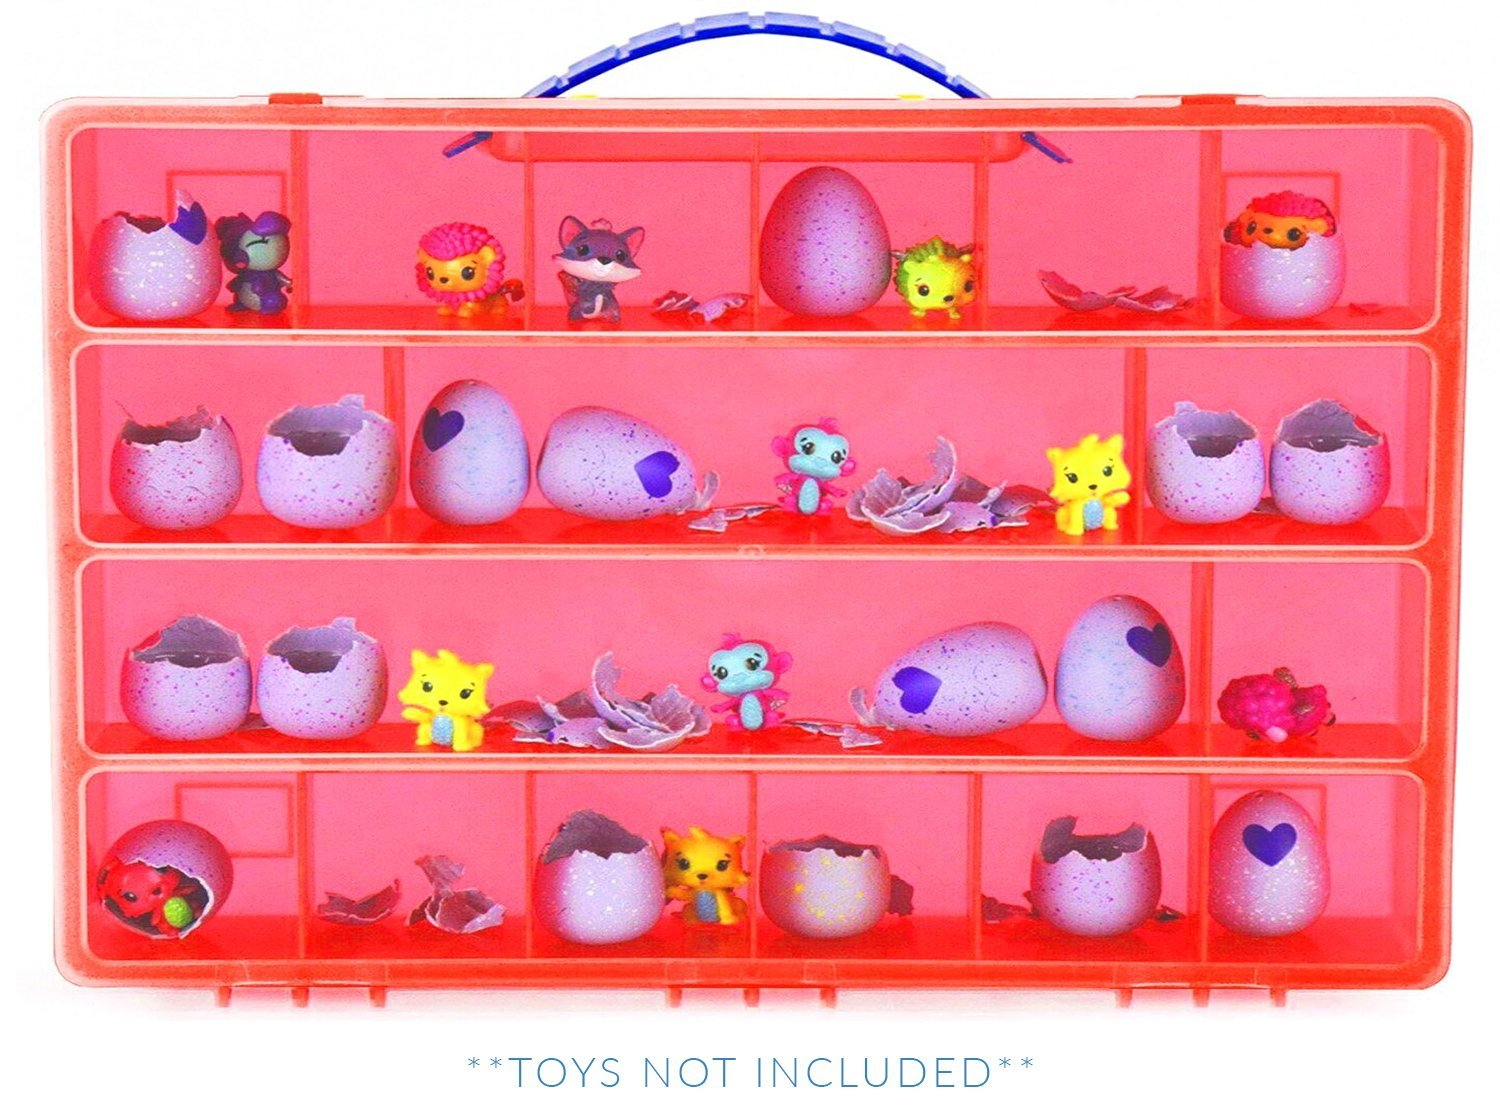 My Egg Crate Storage Organizer By Life Made Better - Compatible with the Hatchimals and Hatchimal Colleggtibles brands - Durable Carrying Case For Mini Eggs, Easter Eggs & Speckled Eggs – Red LMB100